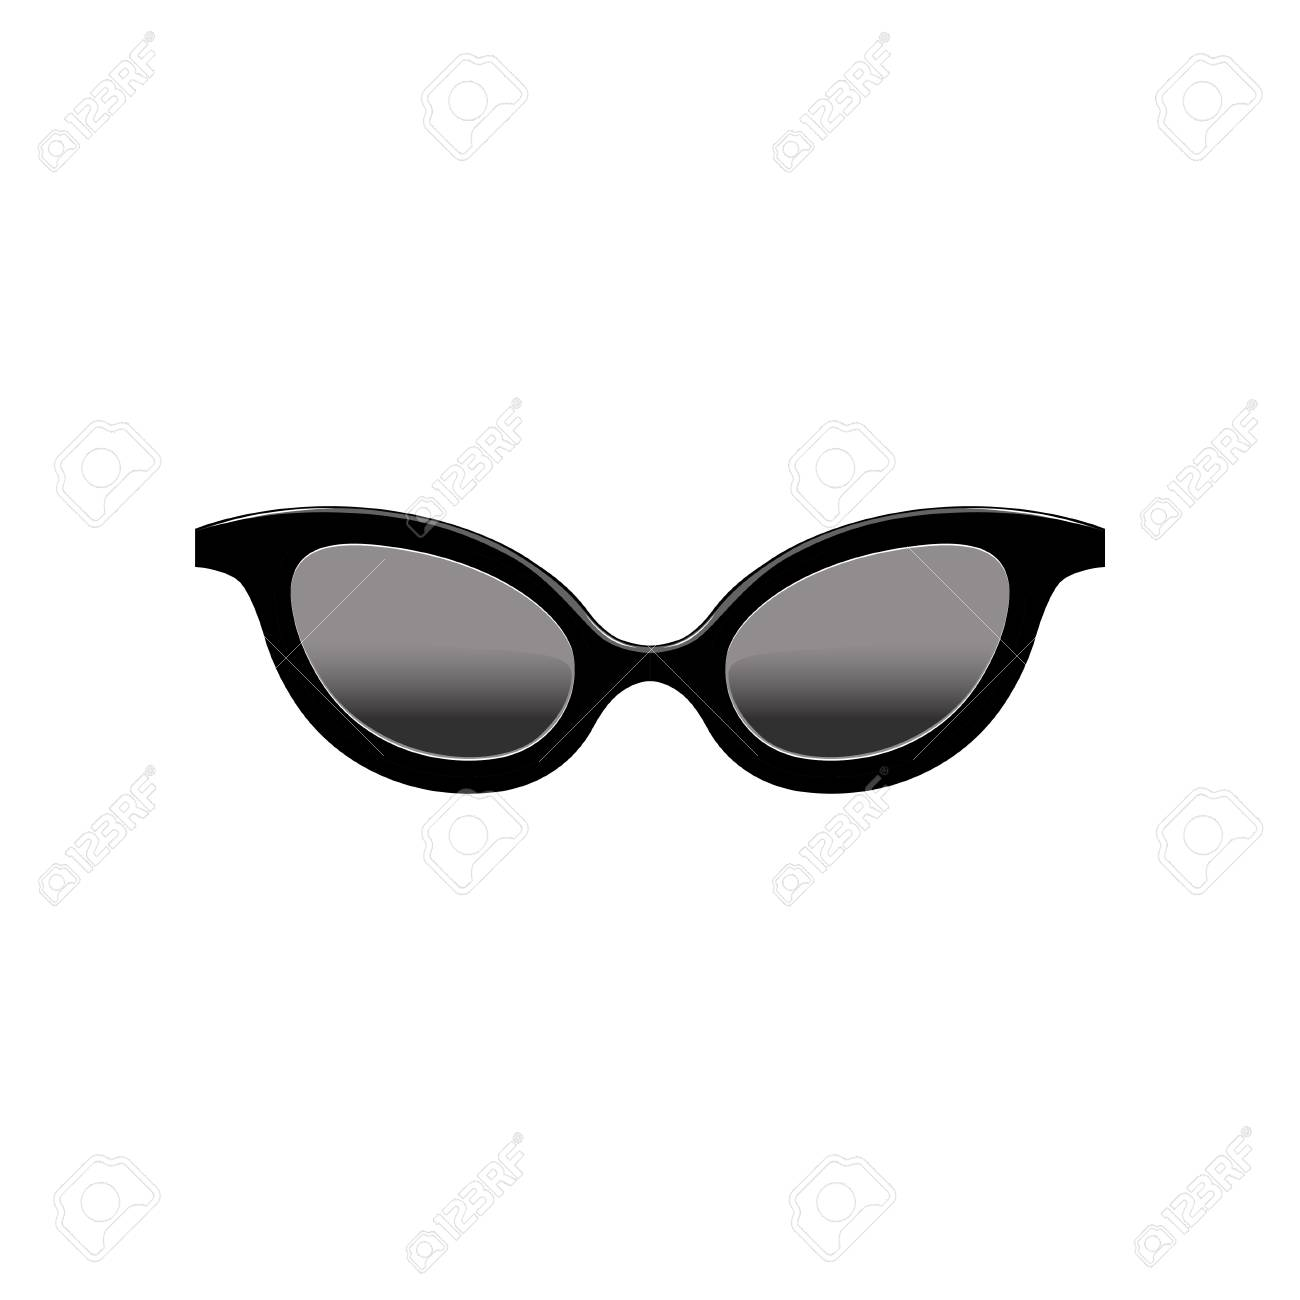 Retro womens cat eye sunglasses with black lenses and plastic frame. Fashion accessory. Flat vector element for mobile app - 104333616